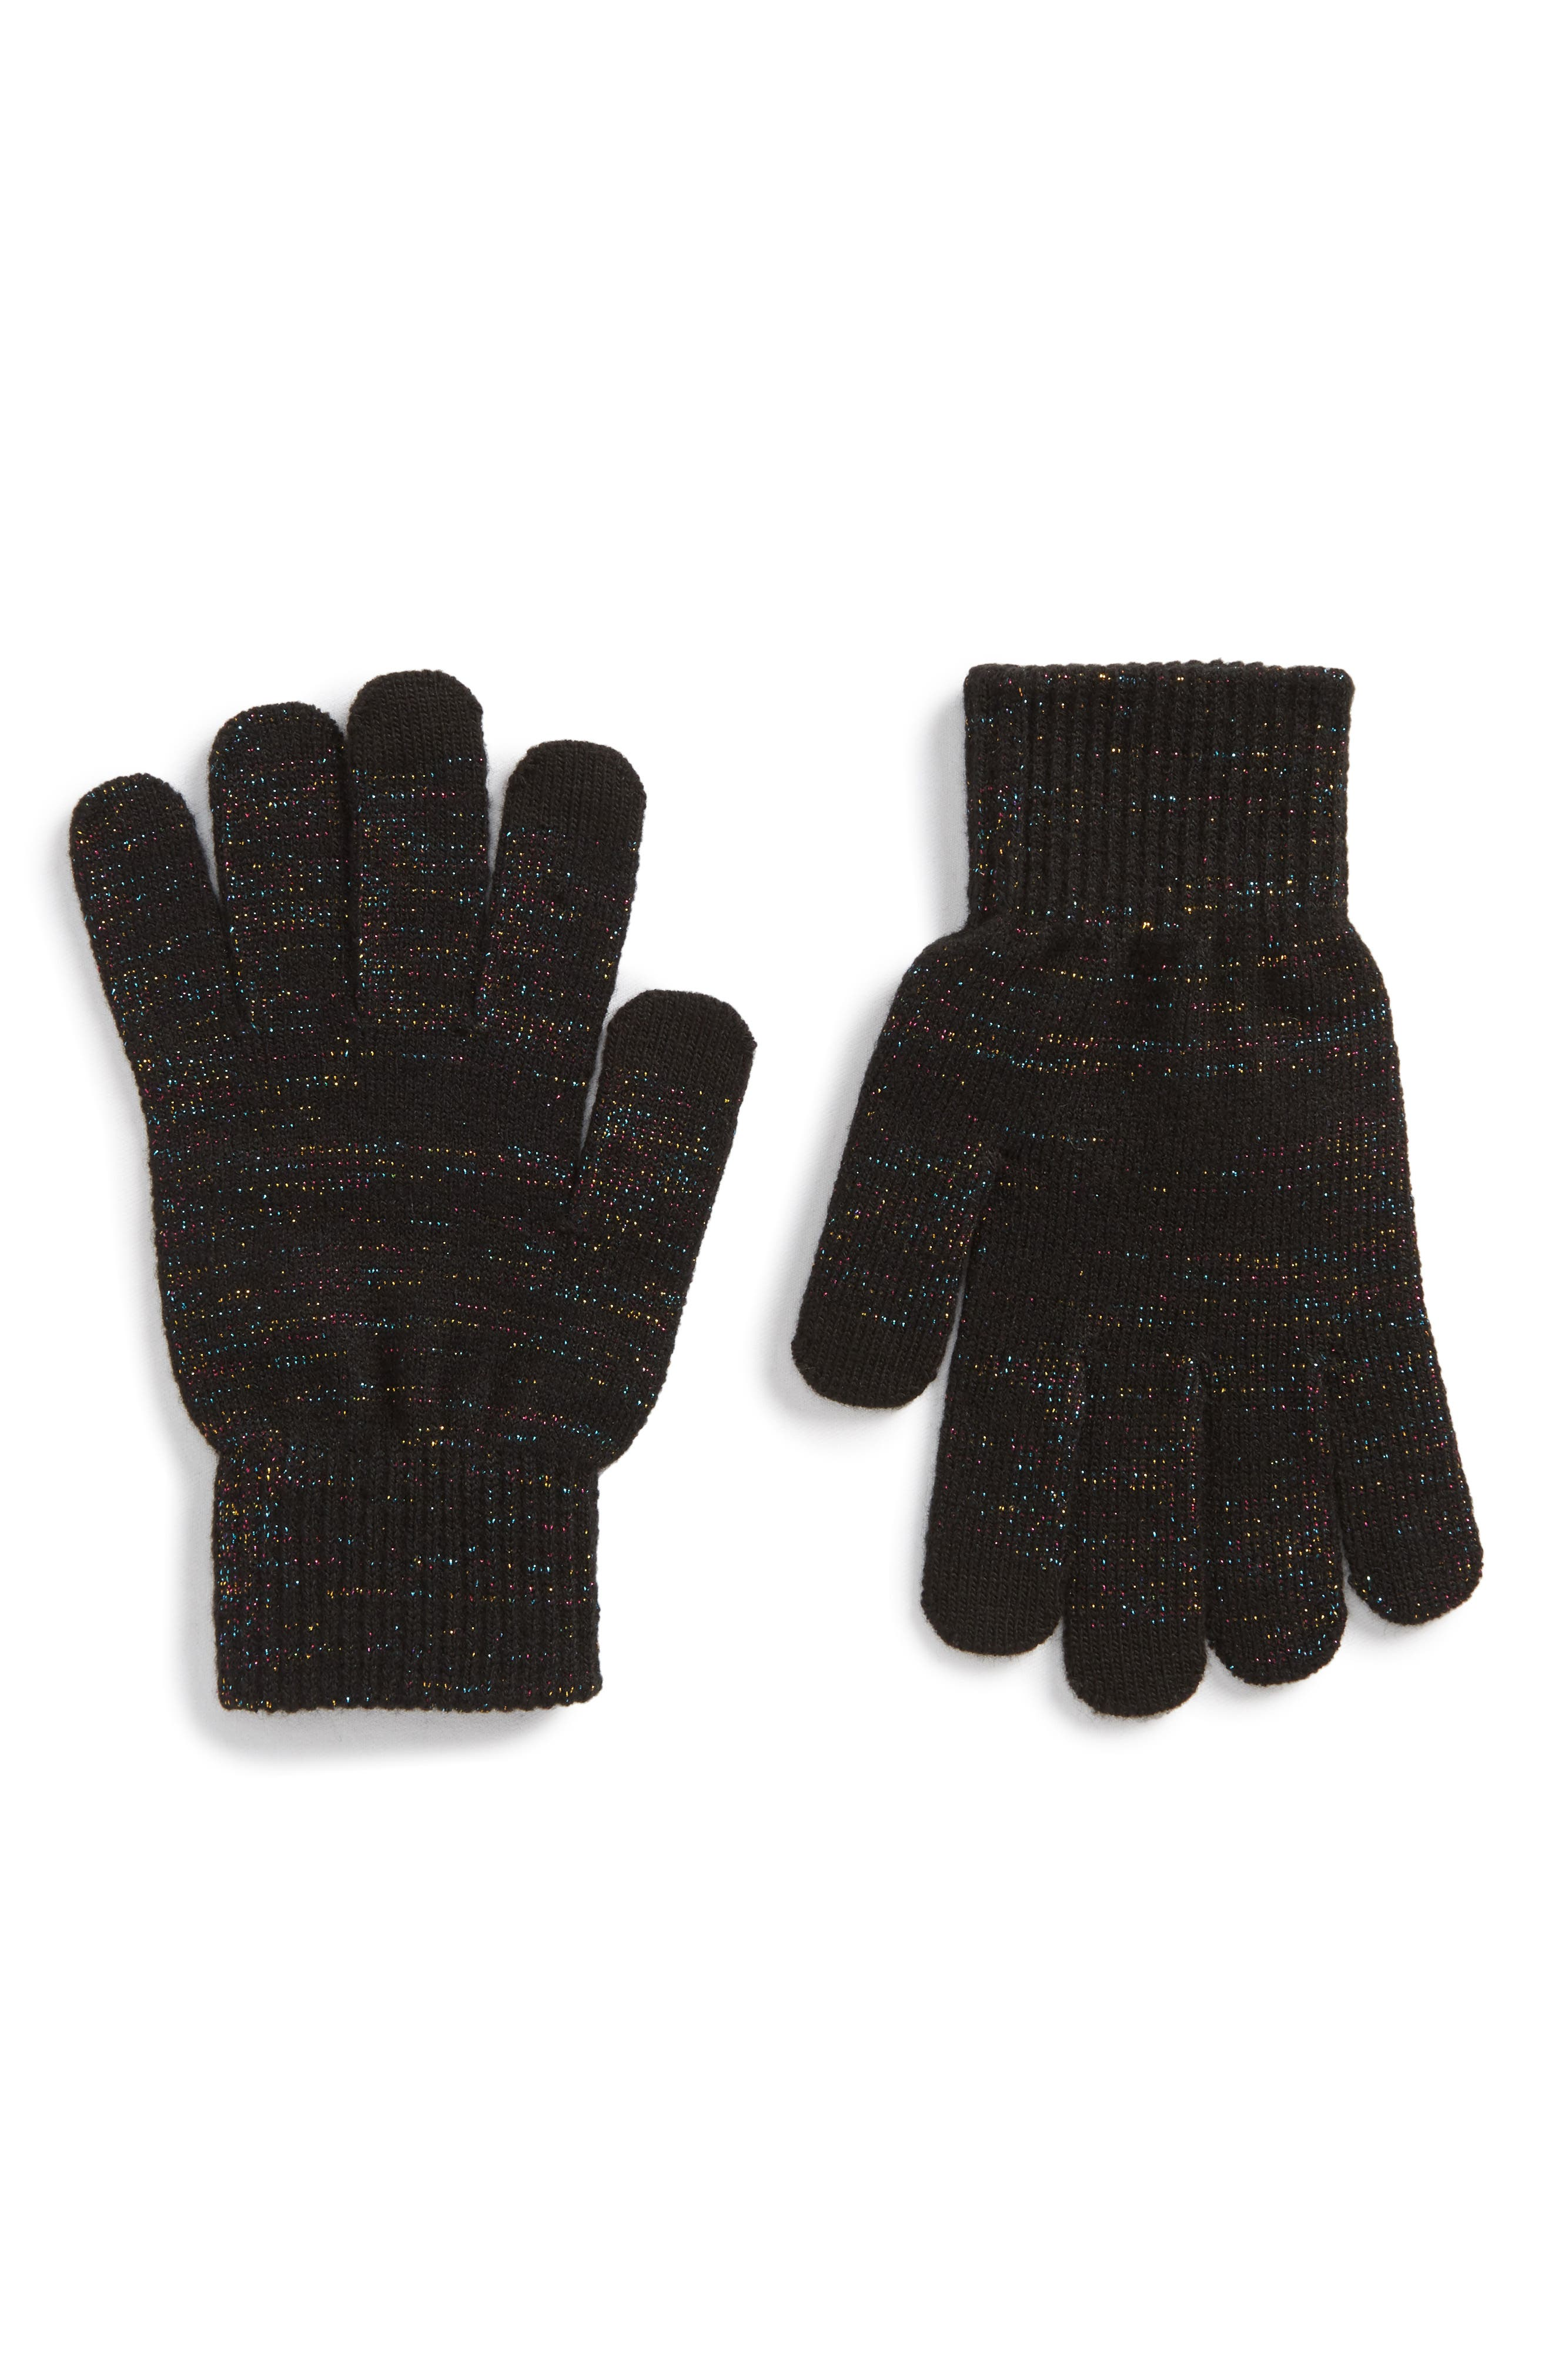 Core Glitter Gloves,                             Main thumbnail 1, color,                             Black